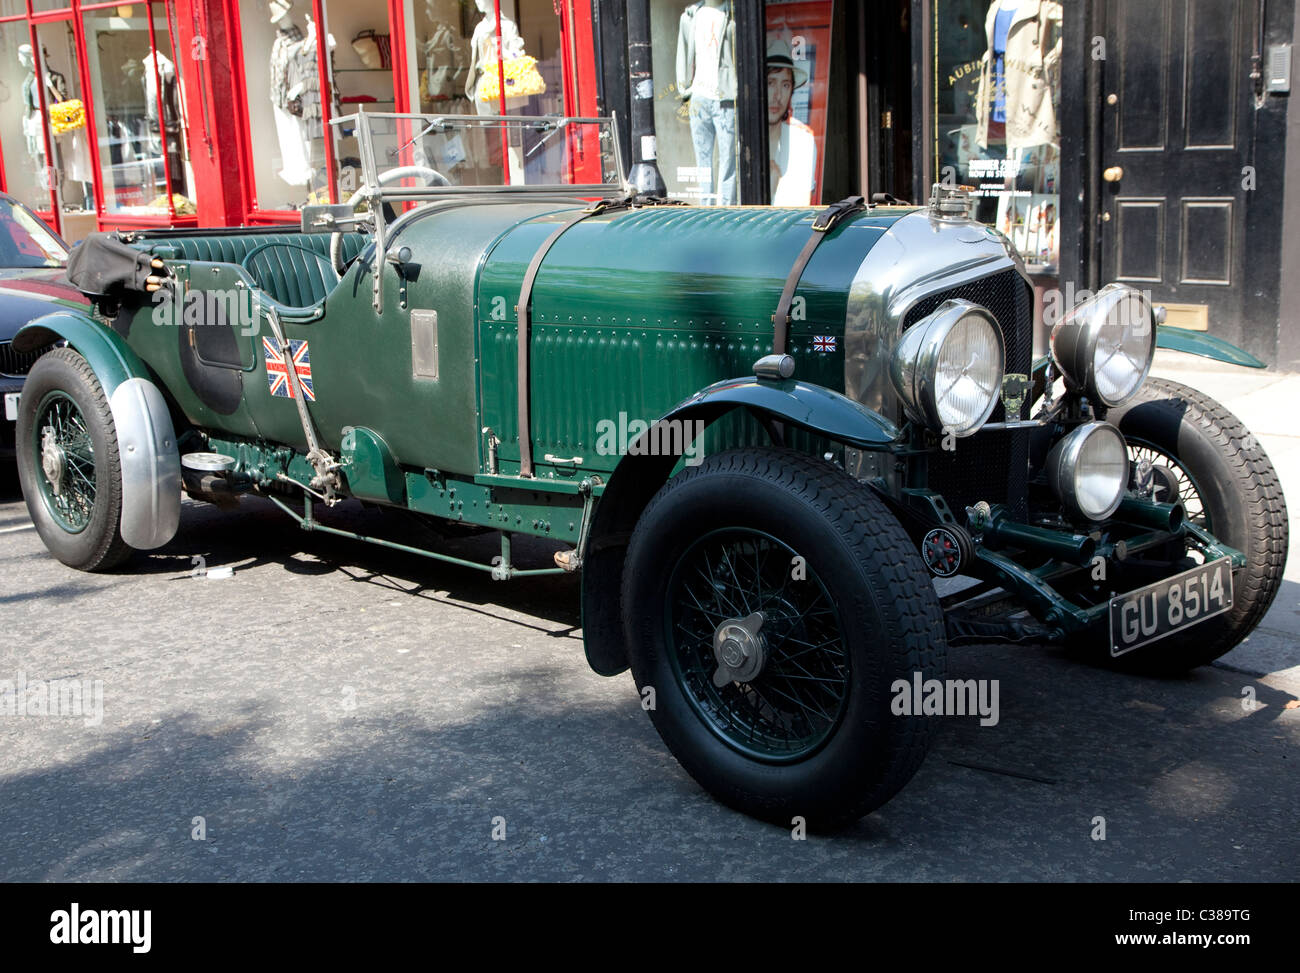 Vintage 4 1/2 Litre Bentley Sports Car, London